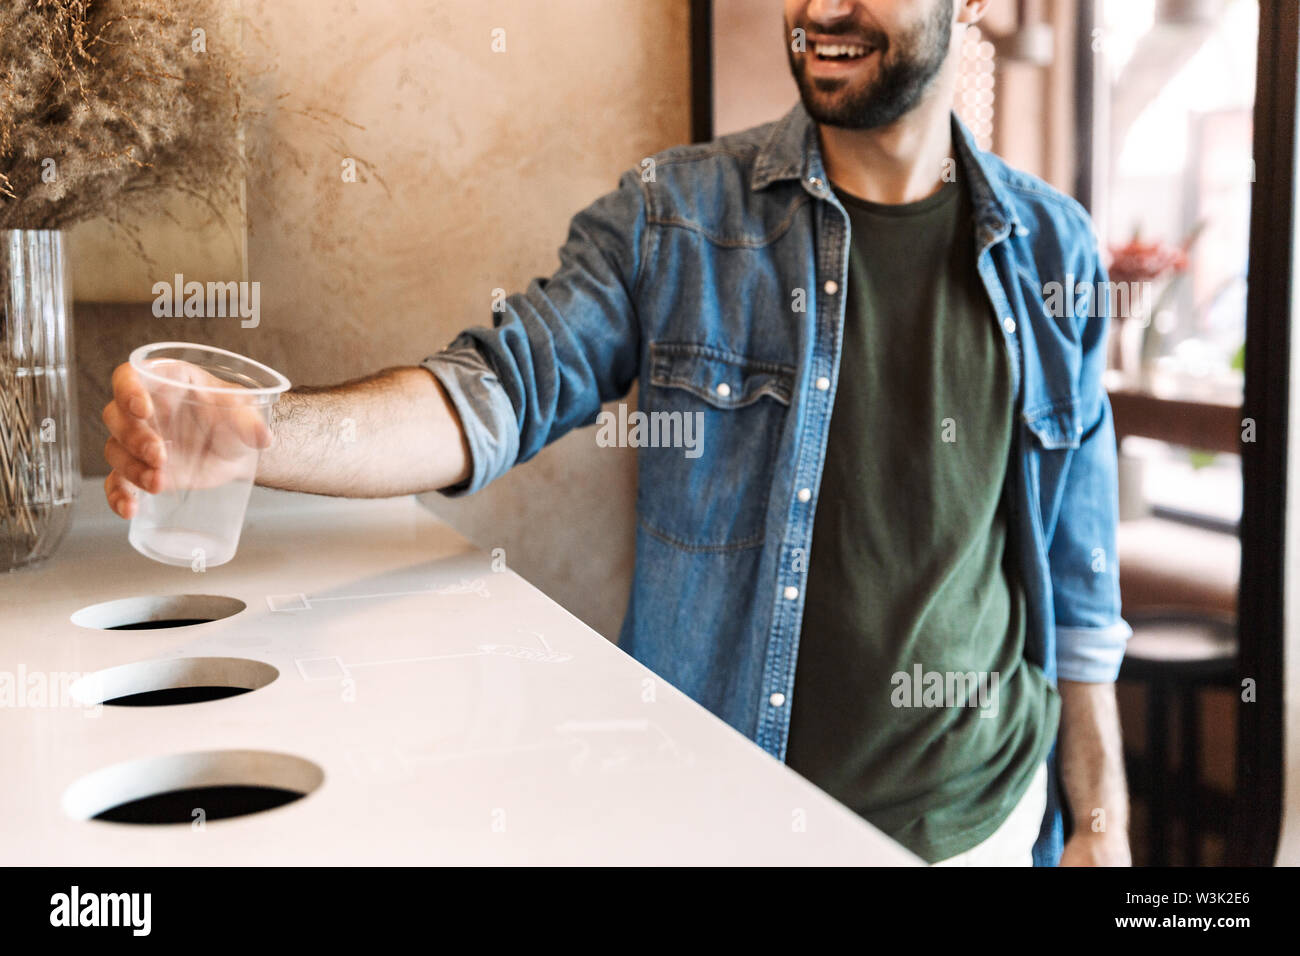 Image of masculine young man wearing denim shirt smiling and throwing plastic garbage to separate collection bins for recycling in cafe indoors - Stock Image